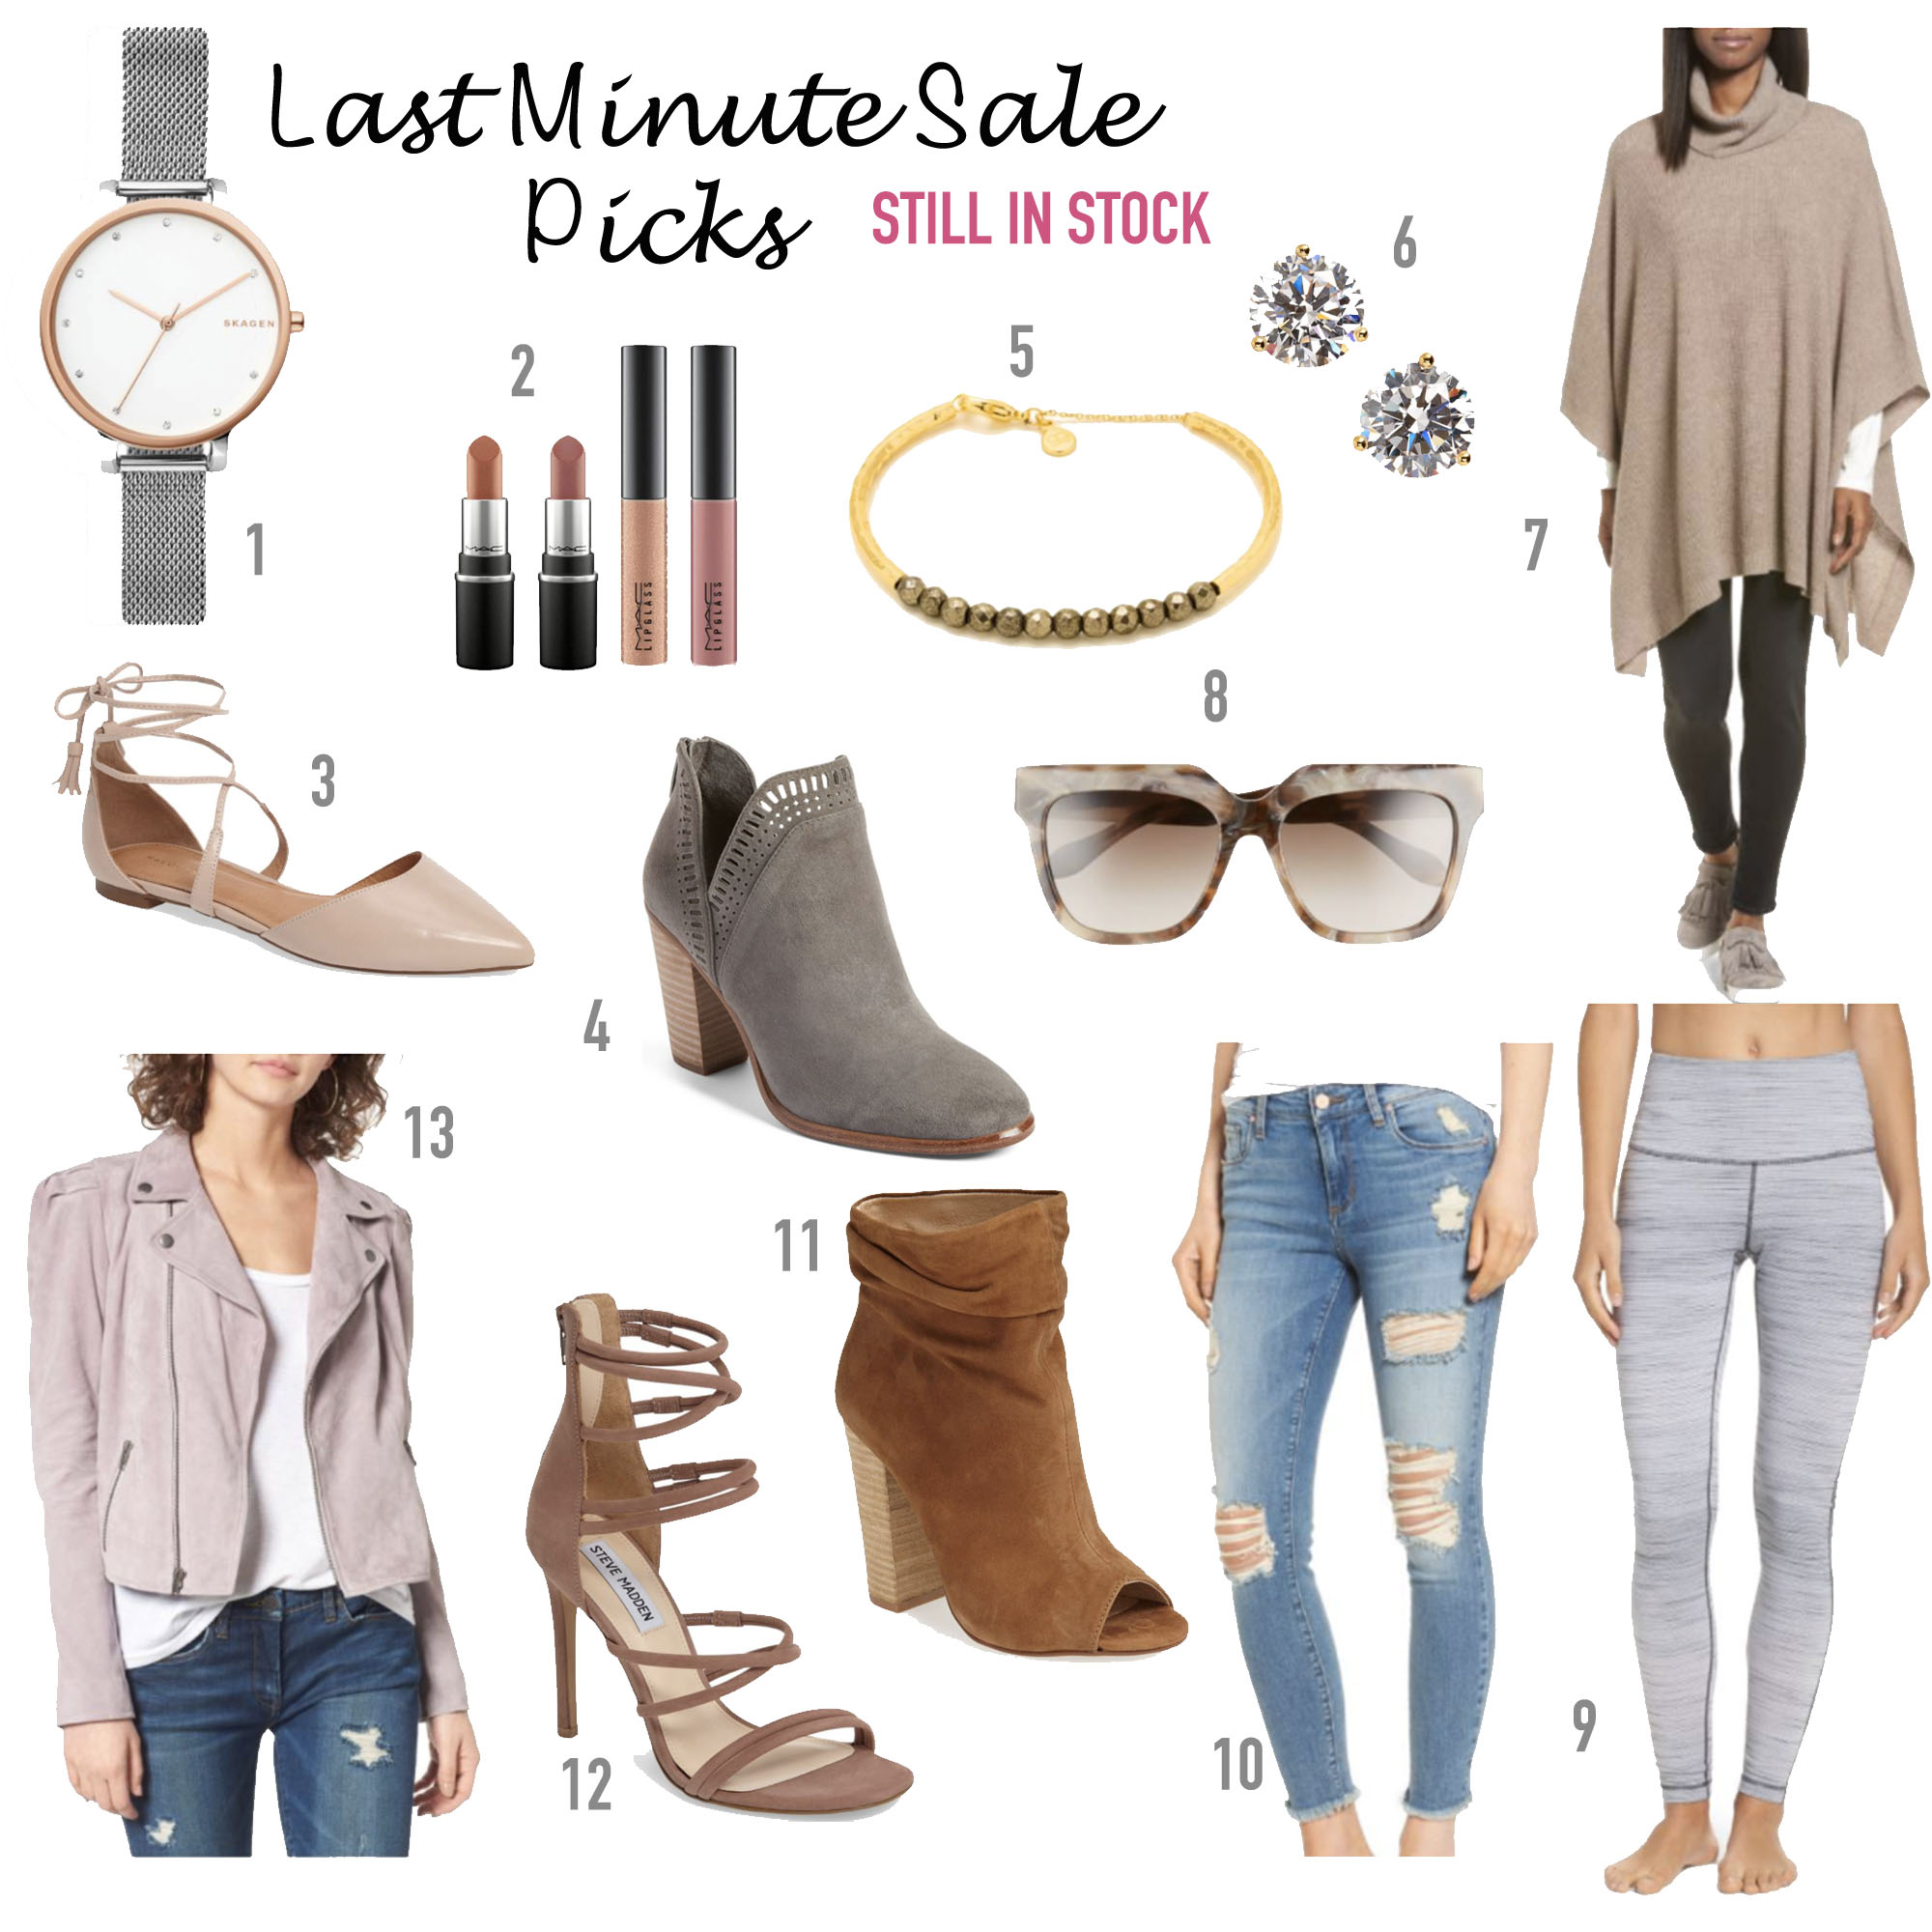 0152df4b3 Nordstrom anniversary sale still in stock sunglasses watch jeans leggings  moto jacket booties flats jewelry makeup